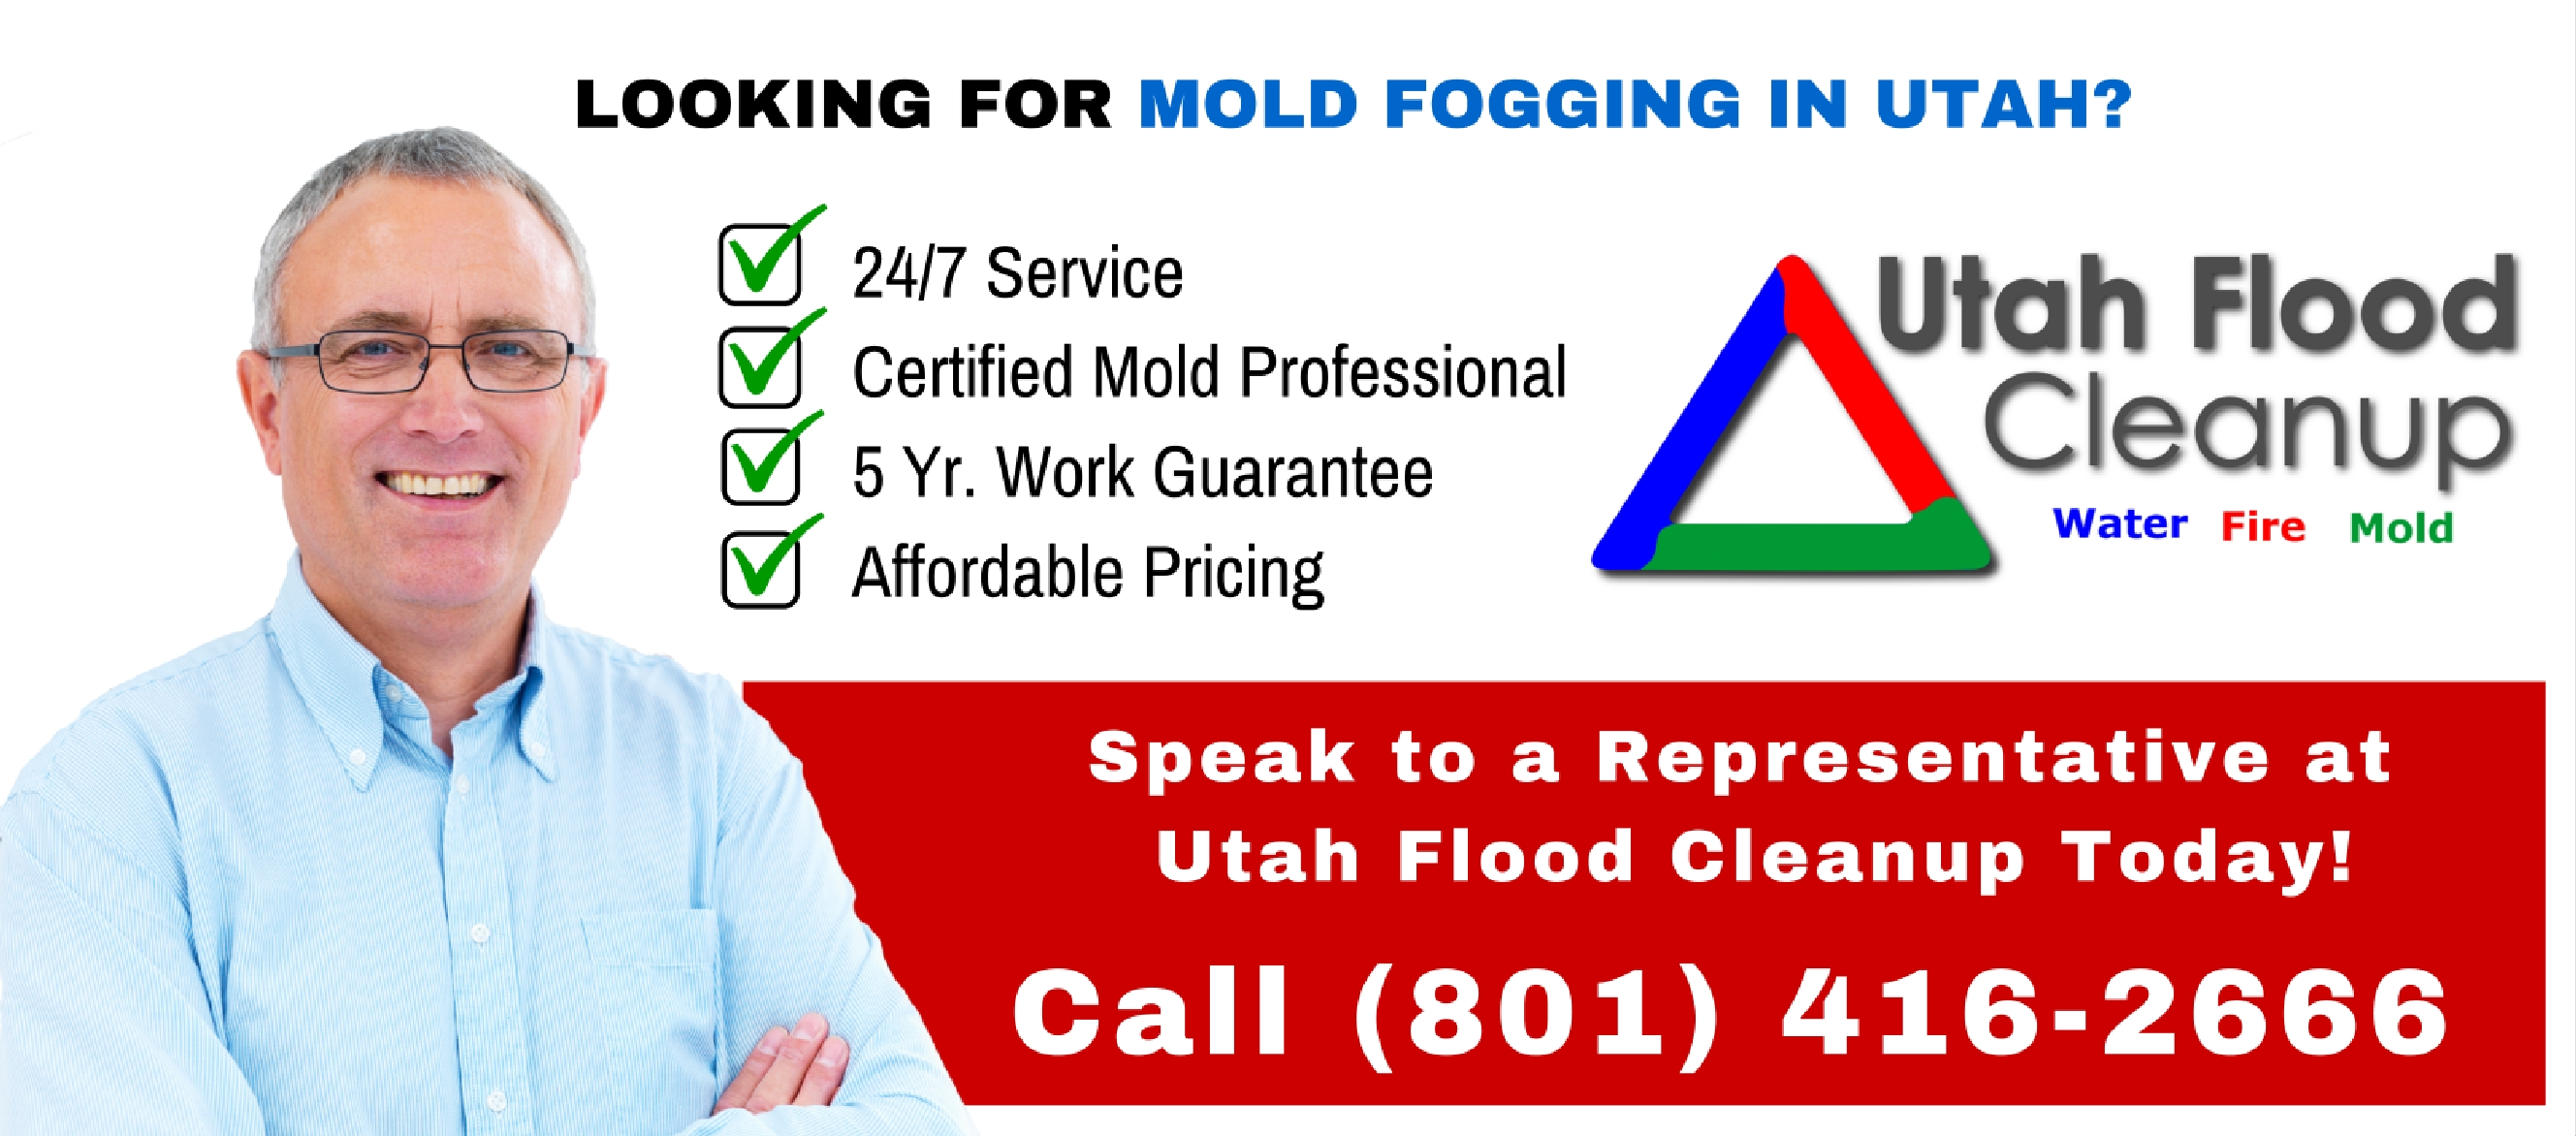 Mold Fogging in Utah mold fogging